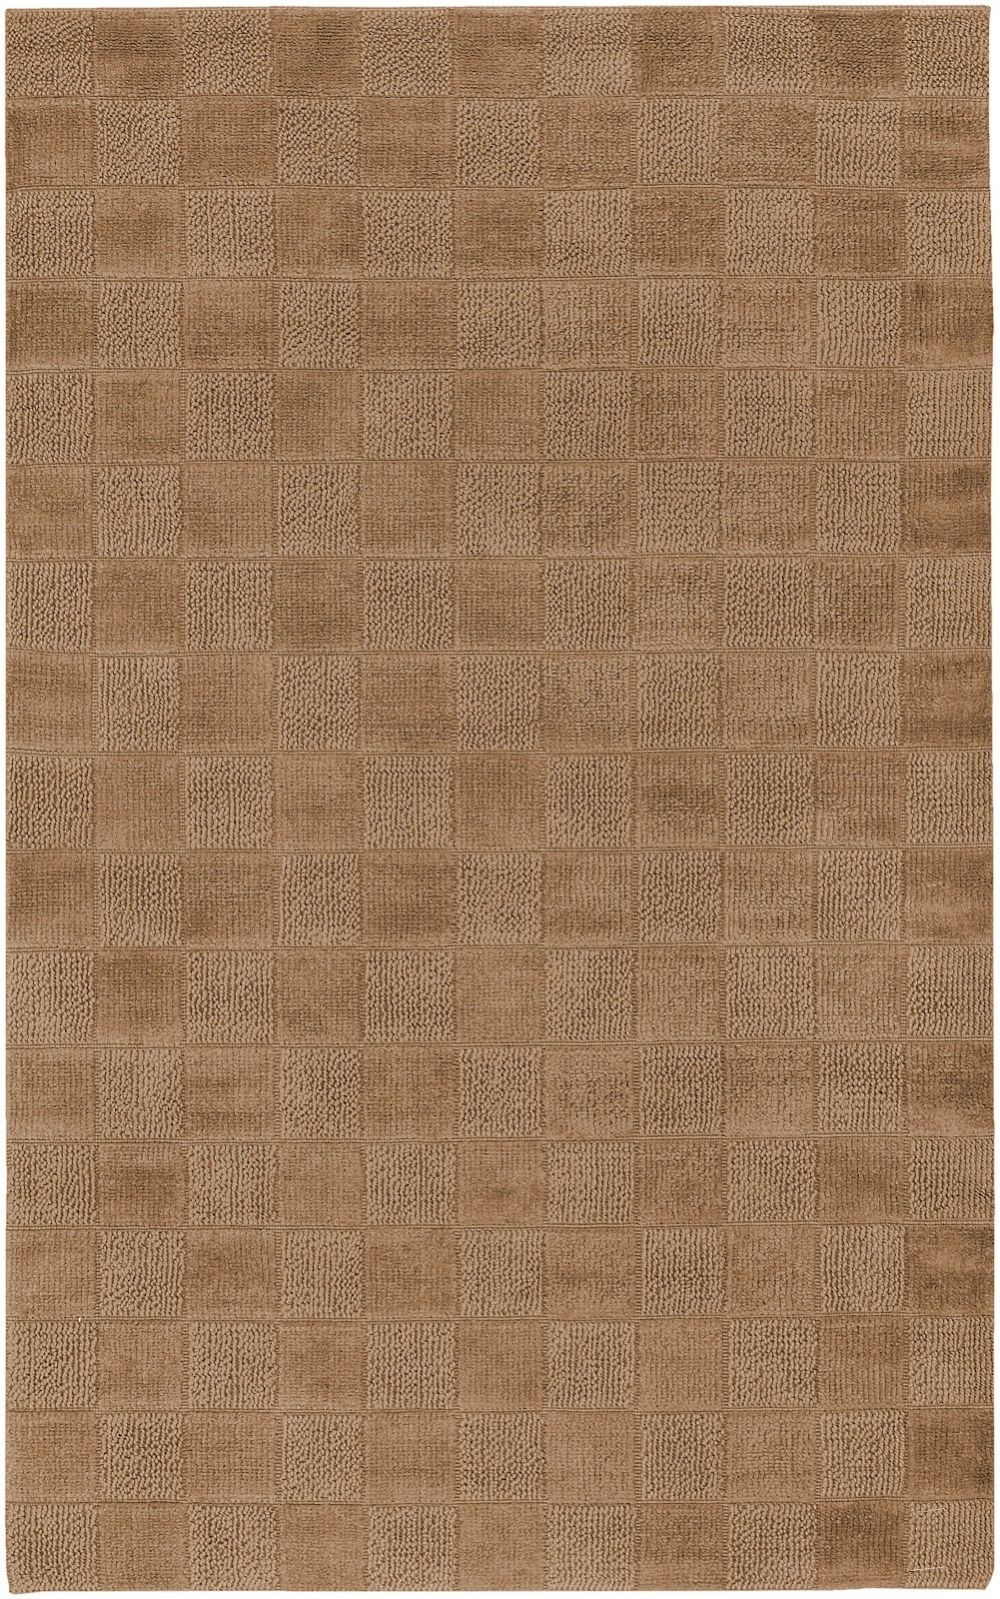 surya panama natural fiber area rug collection